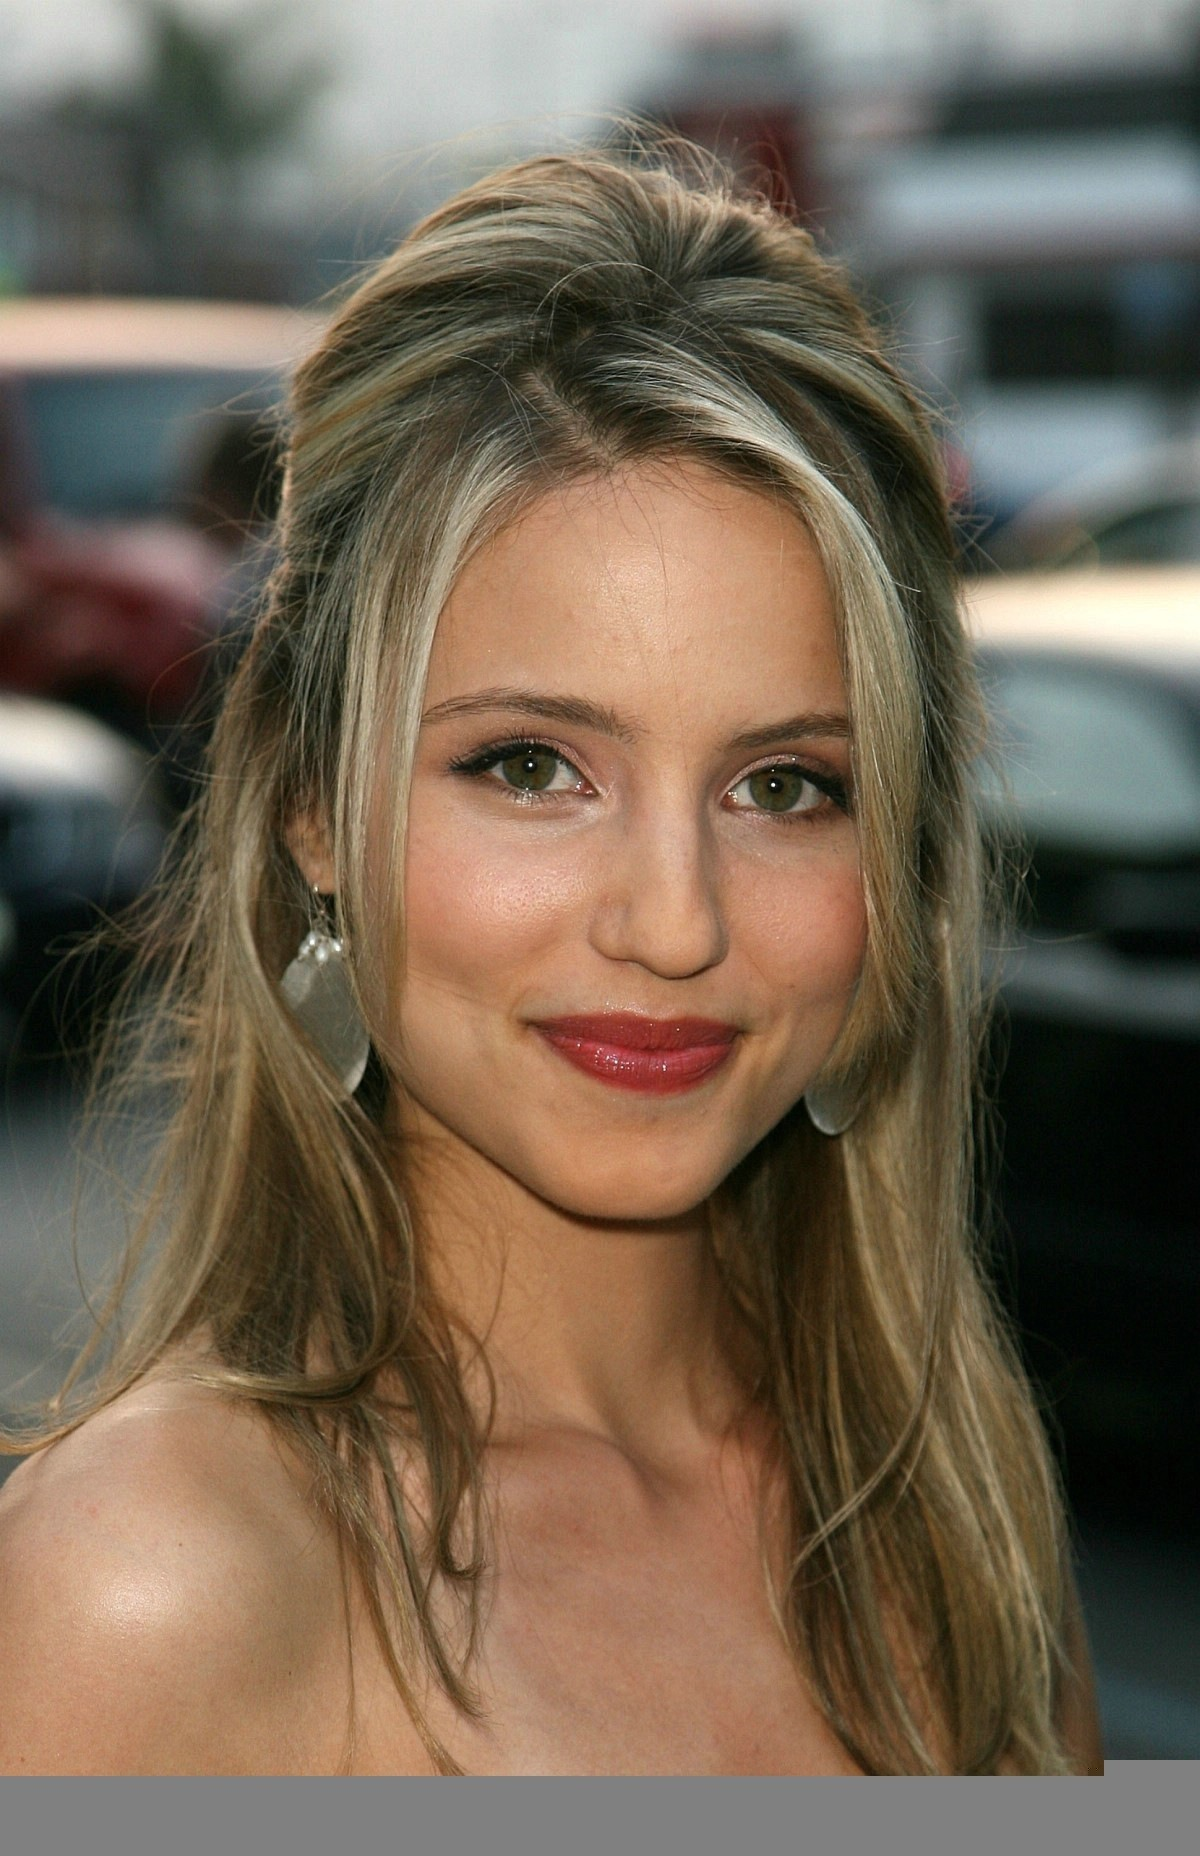 Download this Dianna Agron picture